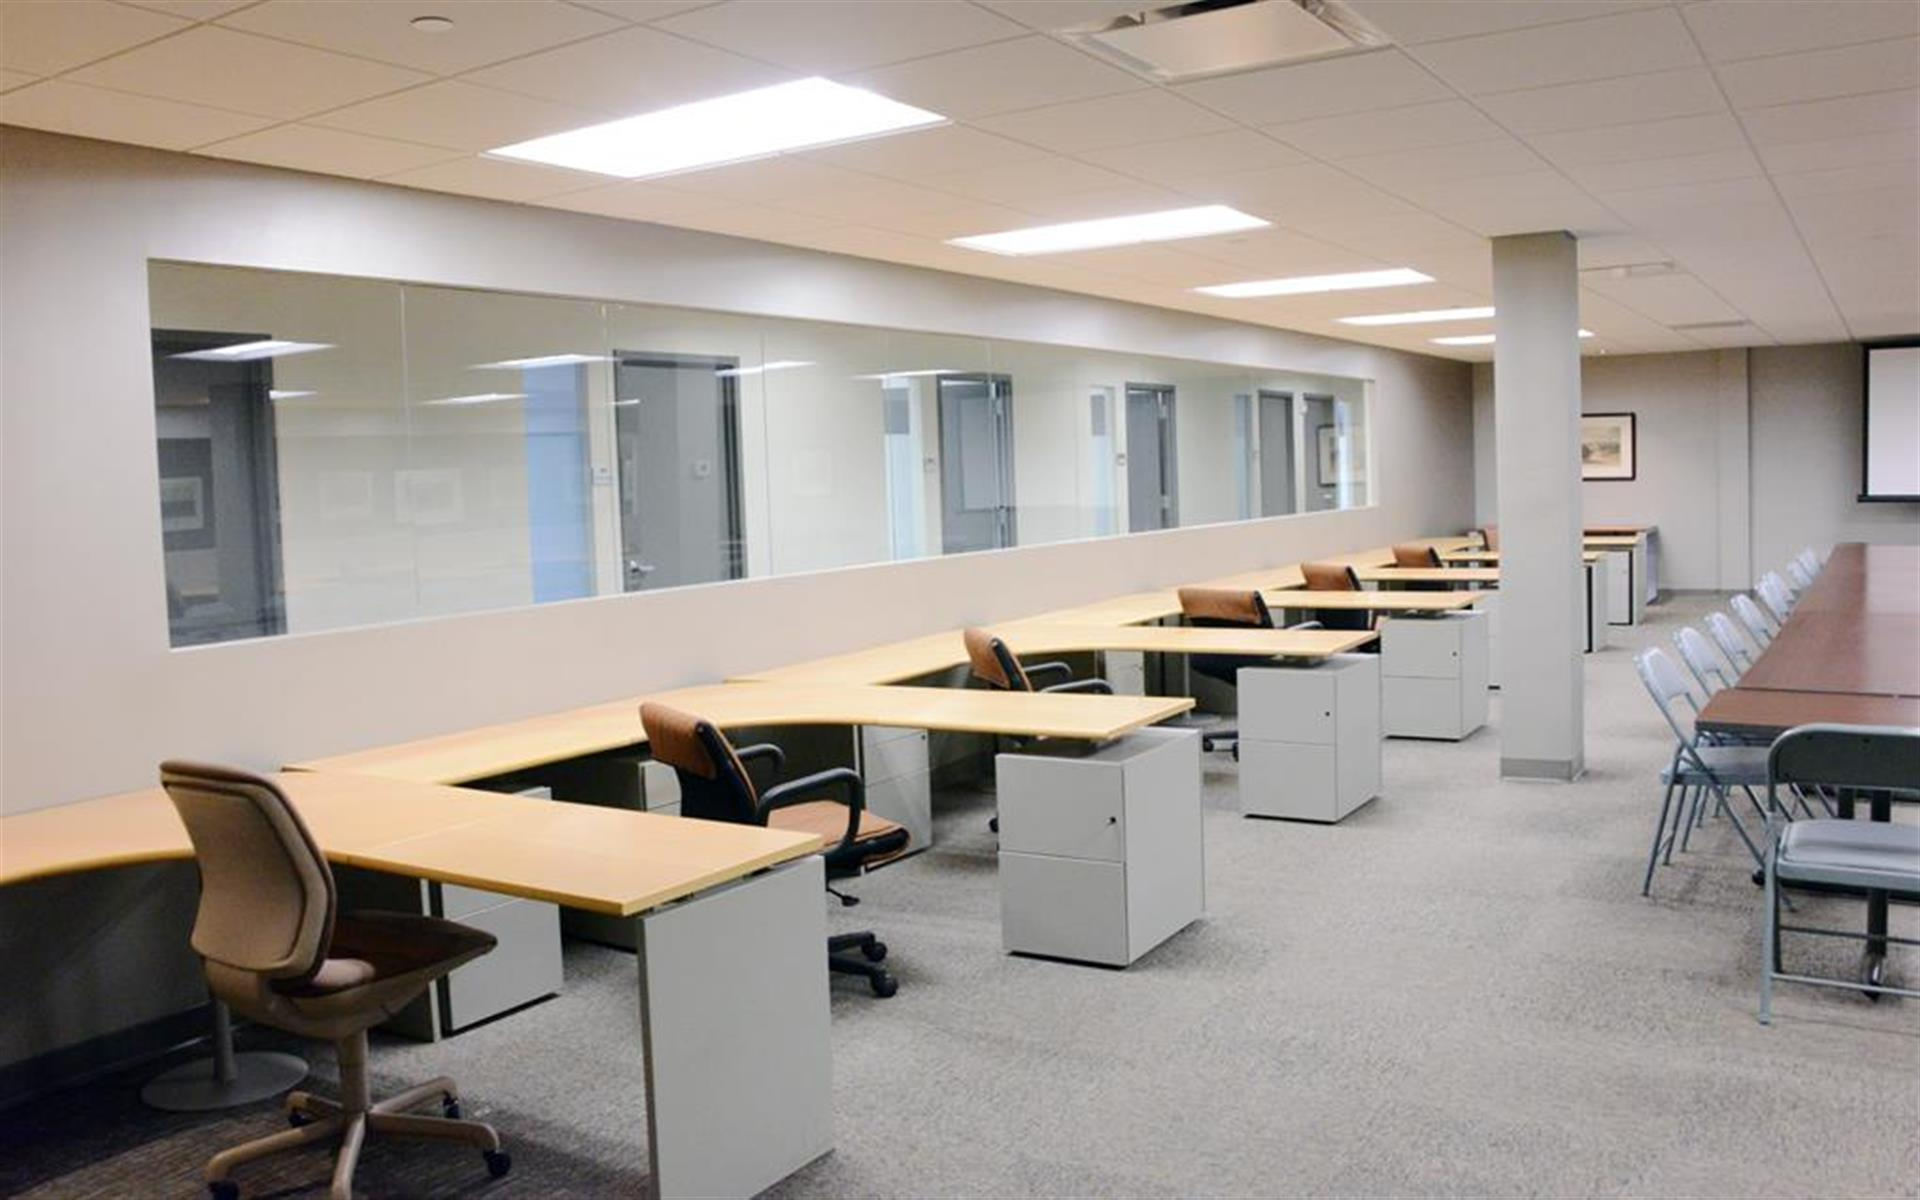 CORPORATE EXECUTIVE OFFICES - Seminar Room